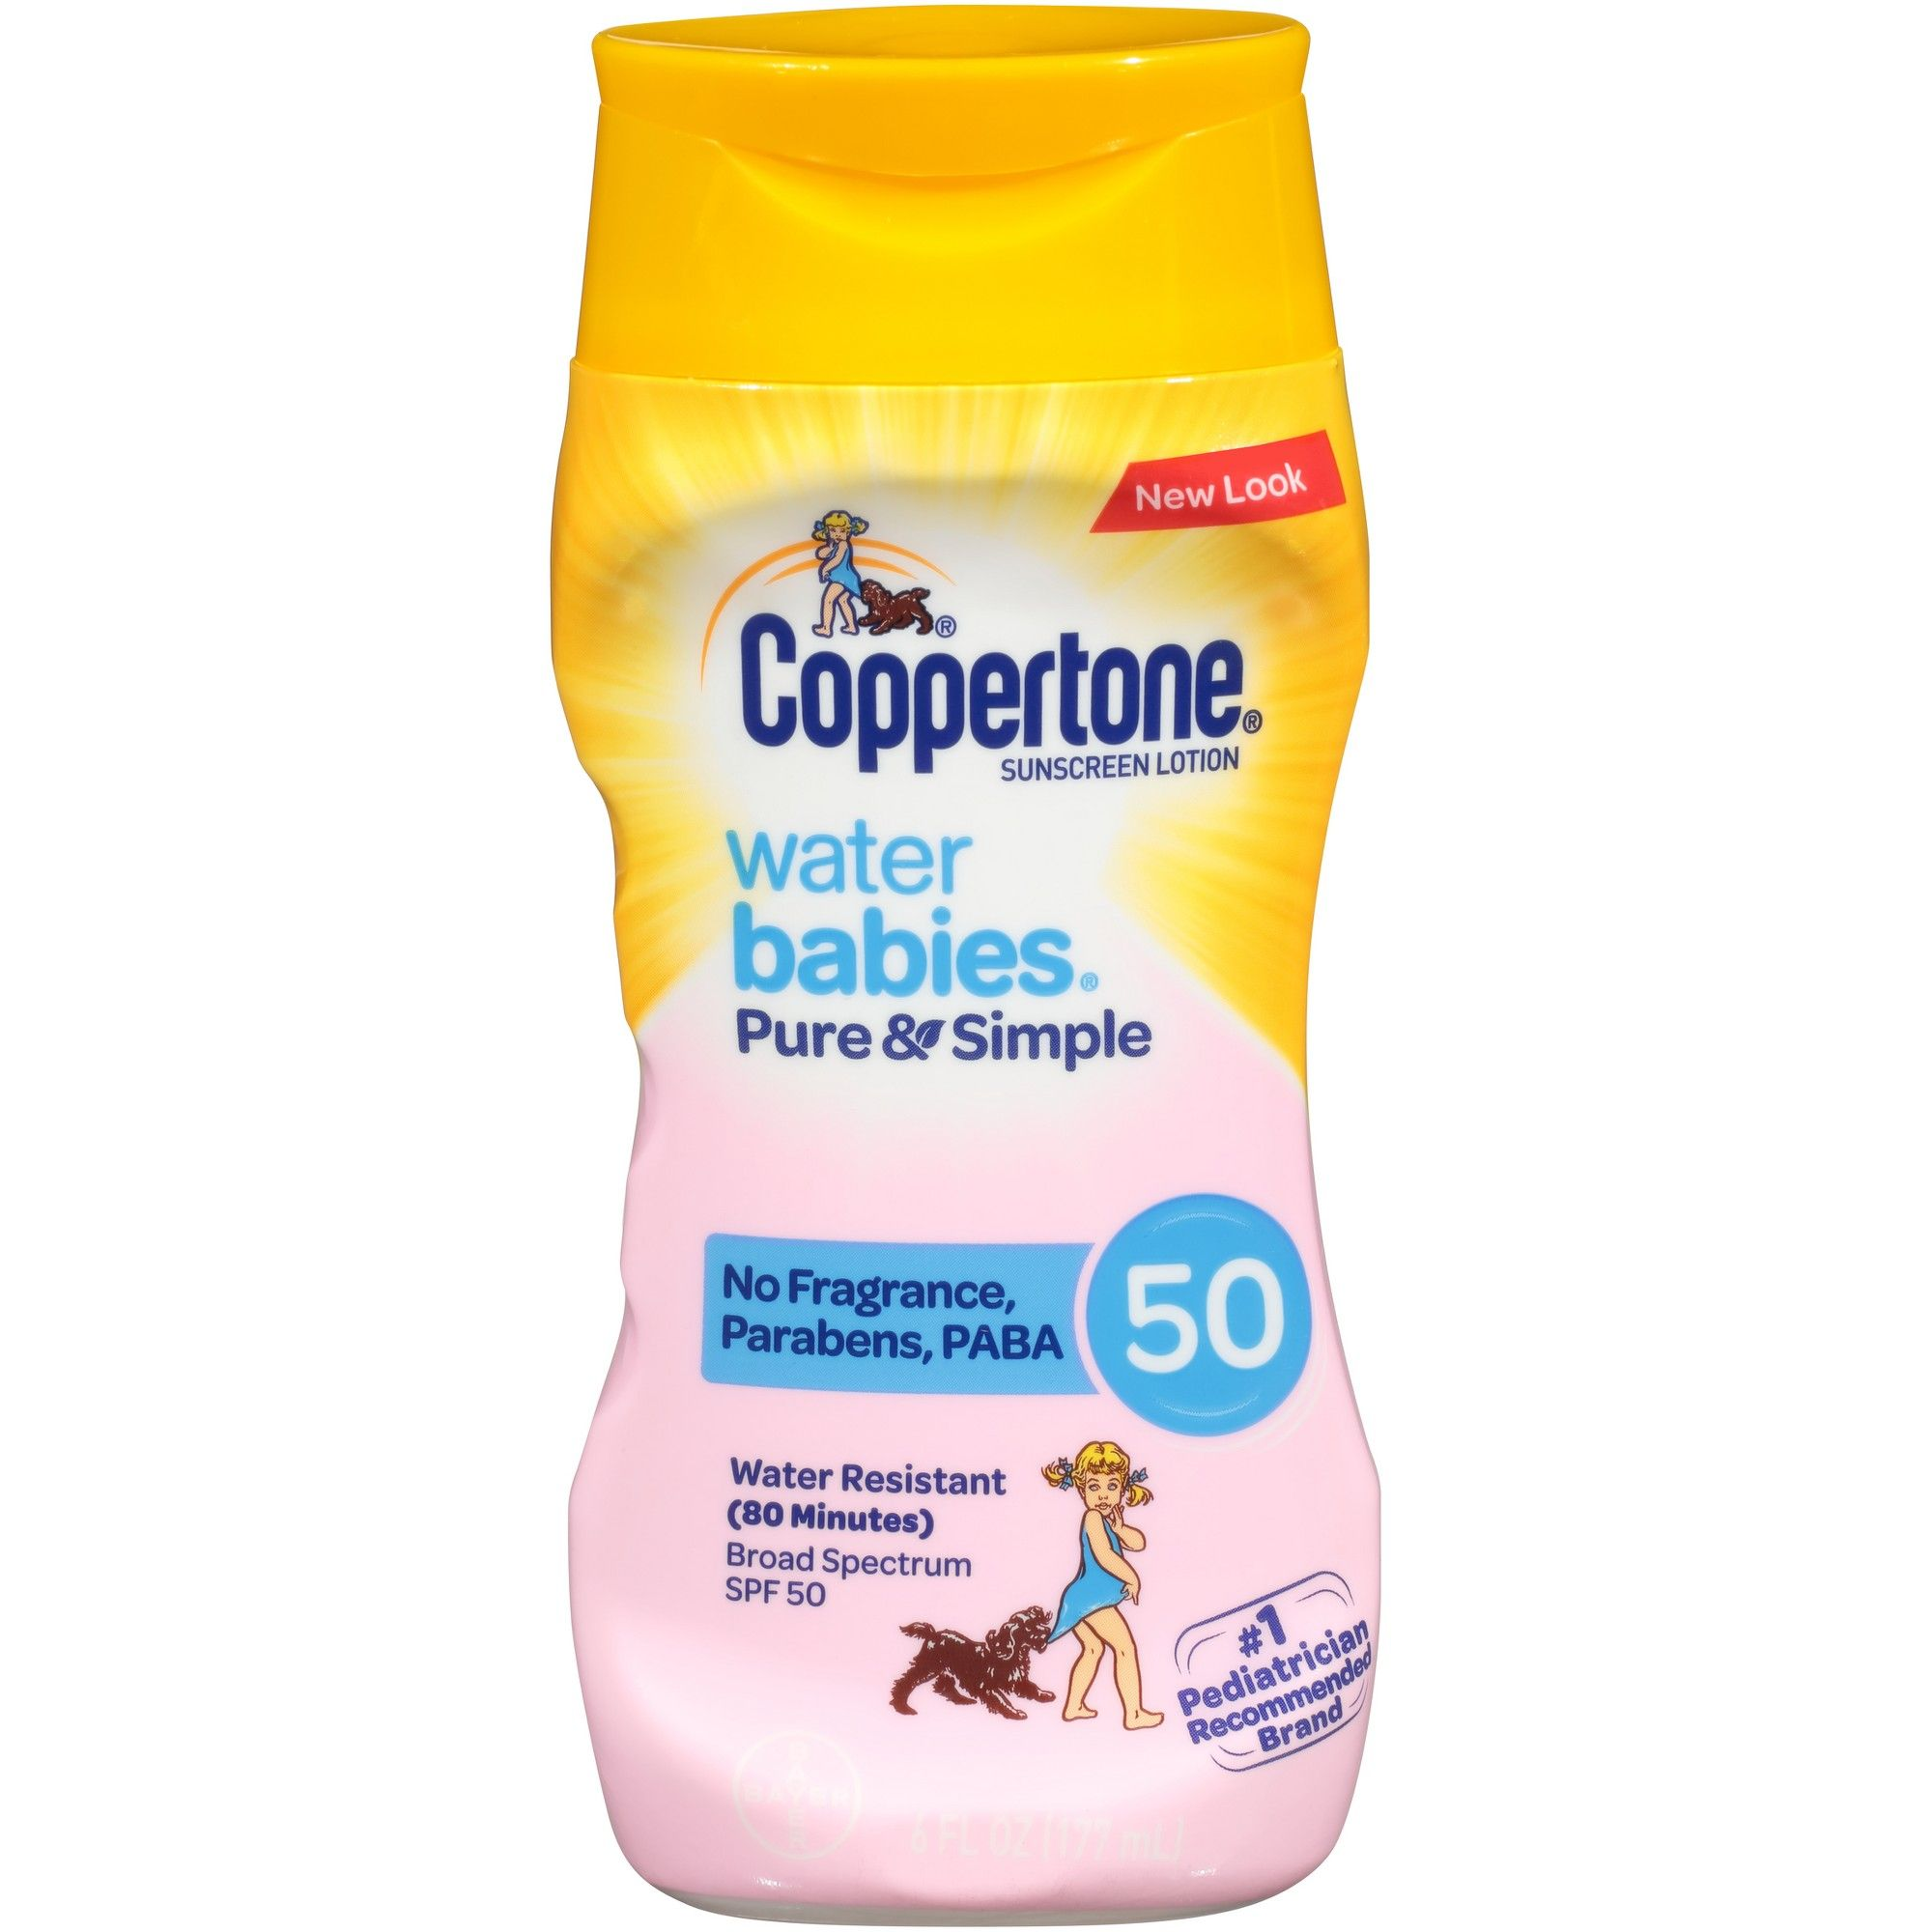 Coppertone Waterbabies Pure and Simple Free Sunscreen